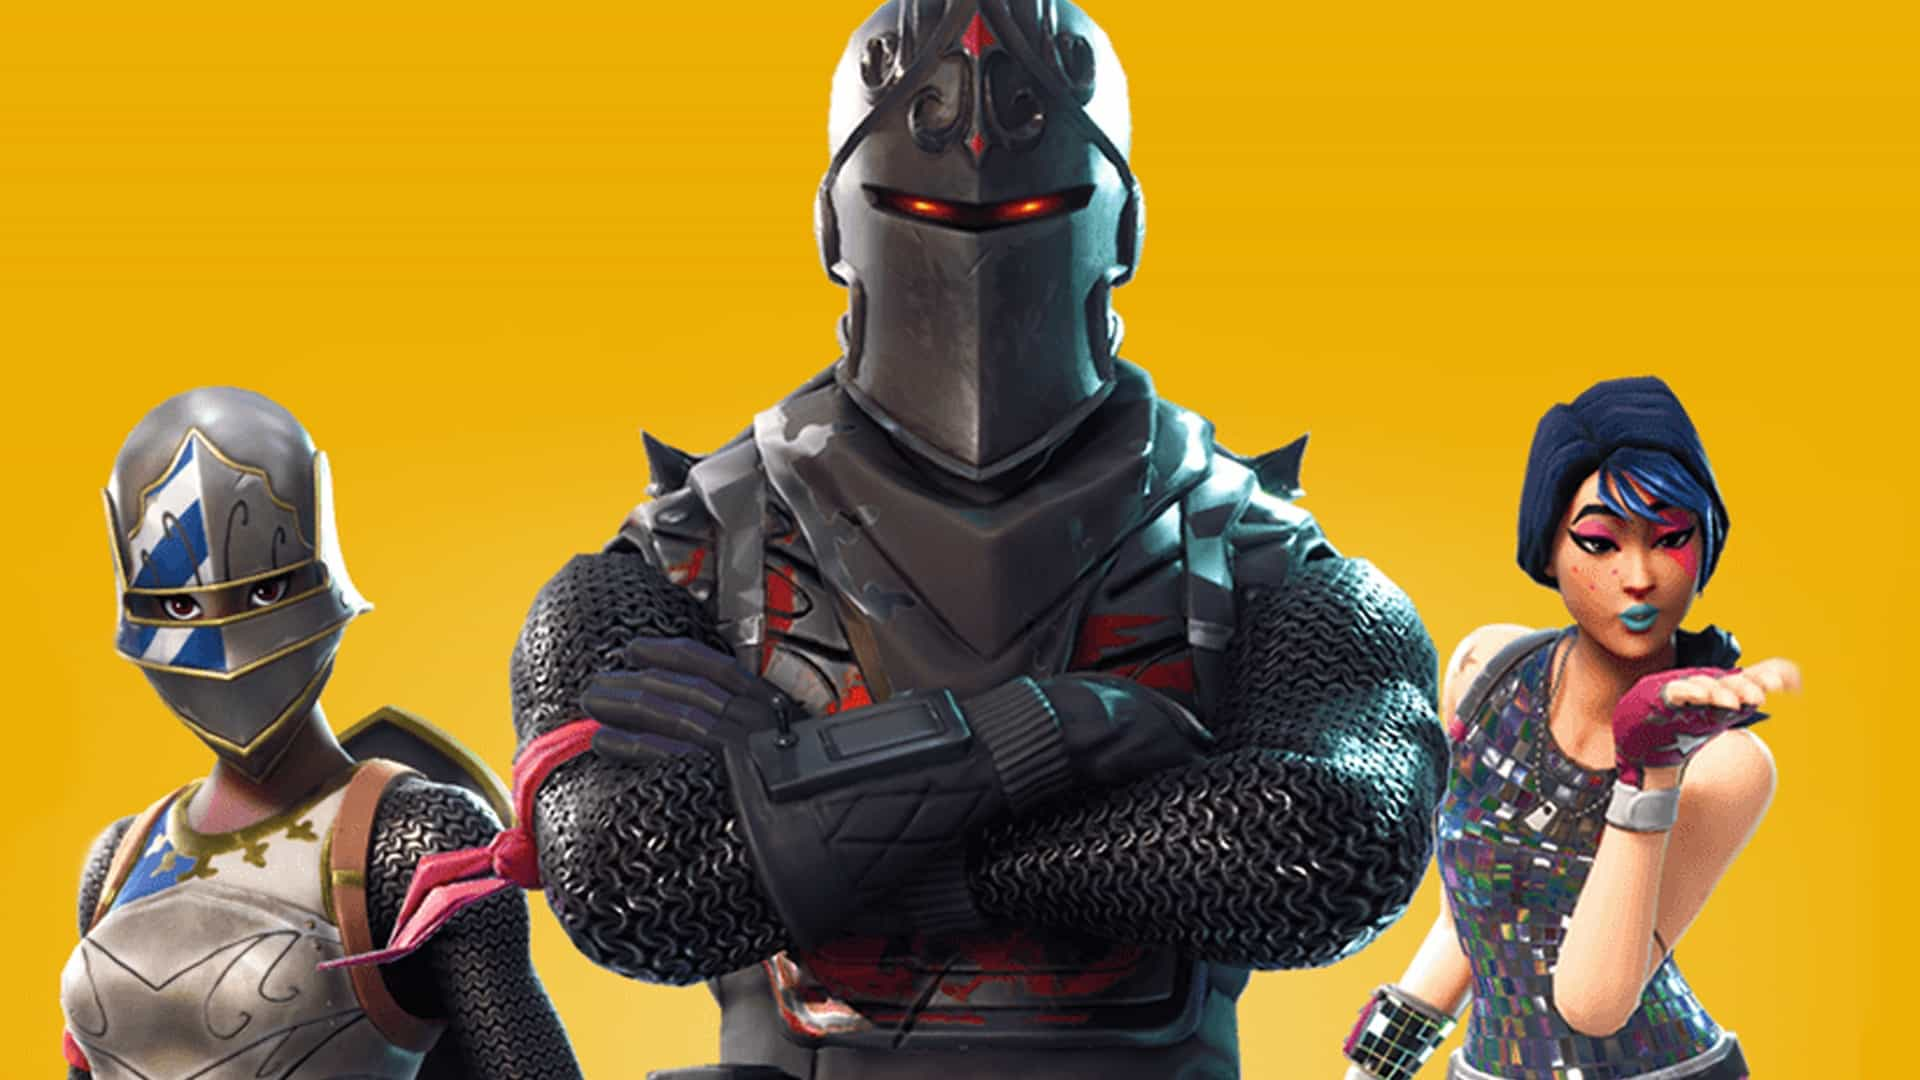 Fortnite 3.3 Update Delayed, Teams of 20 Mode Extended